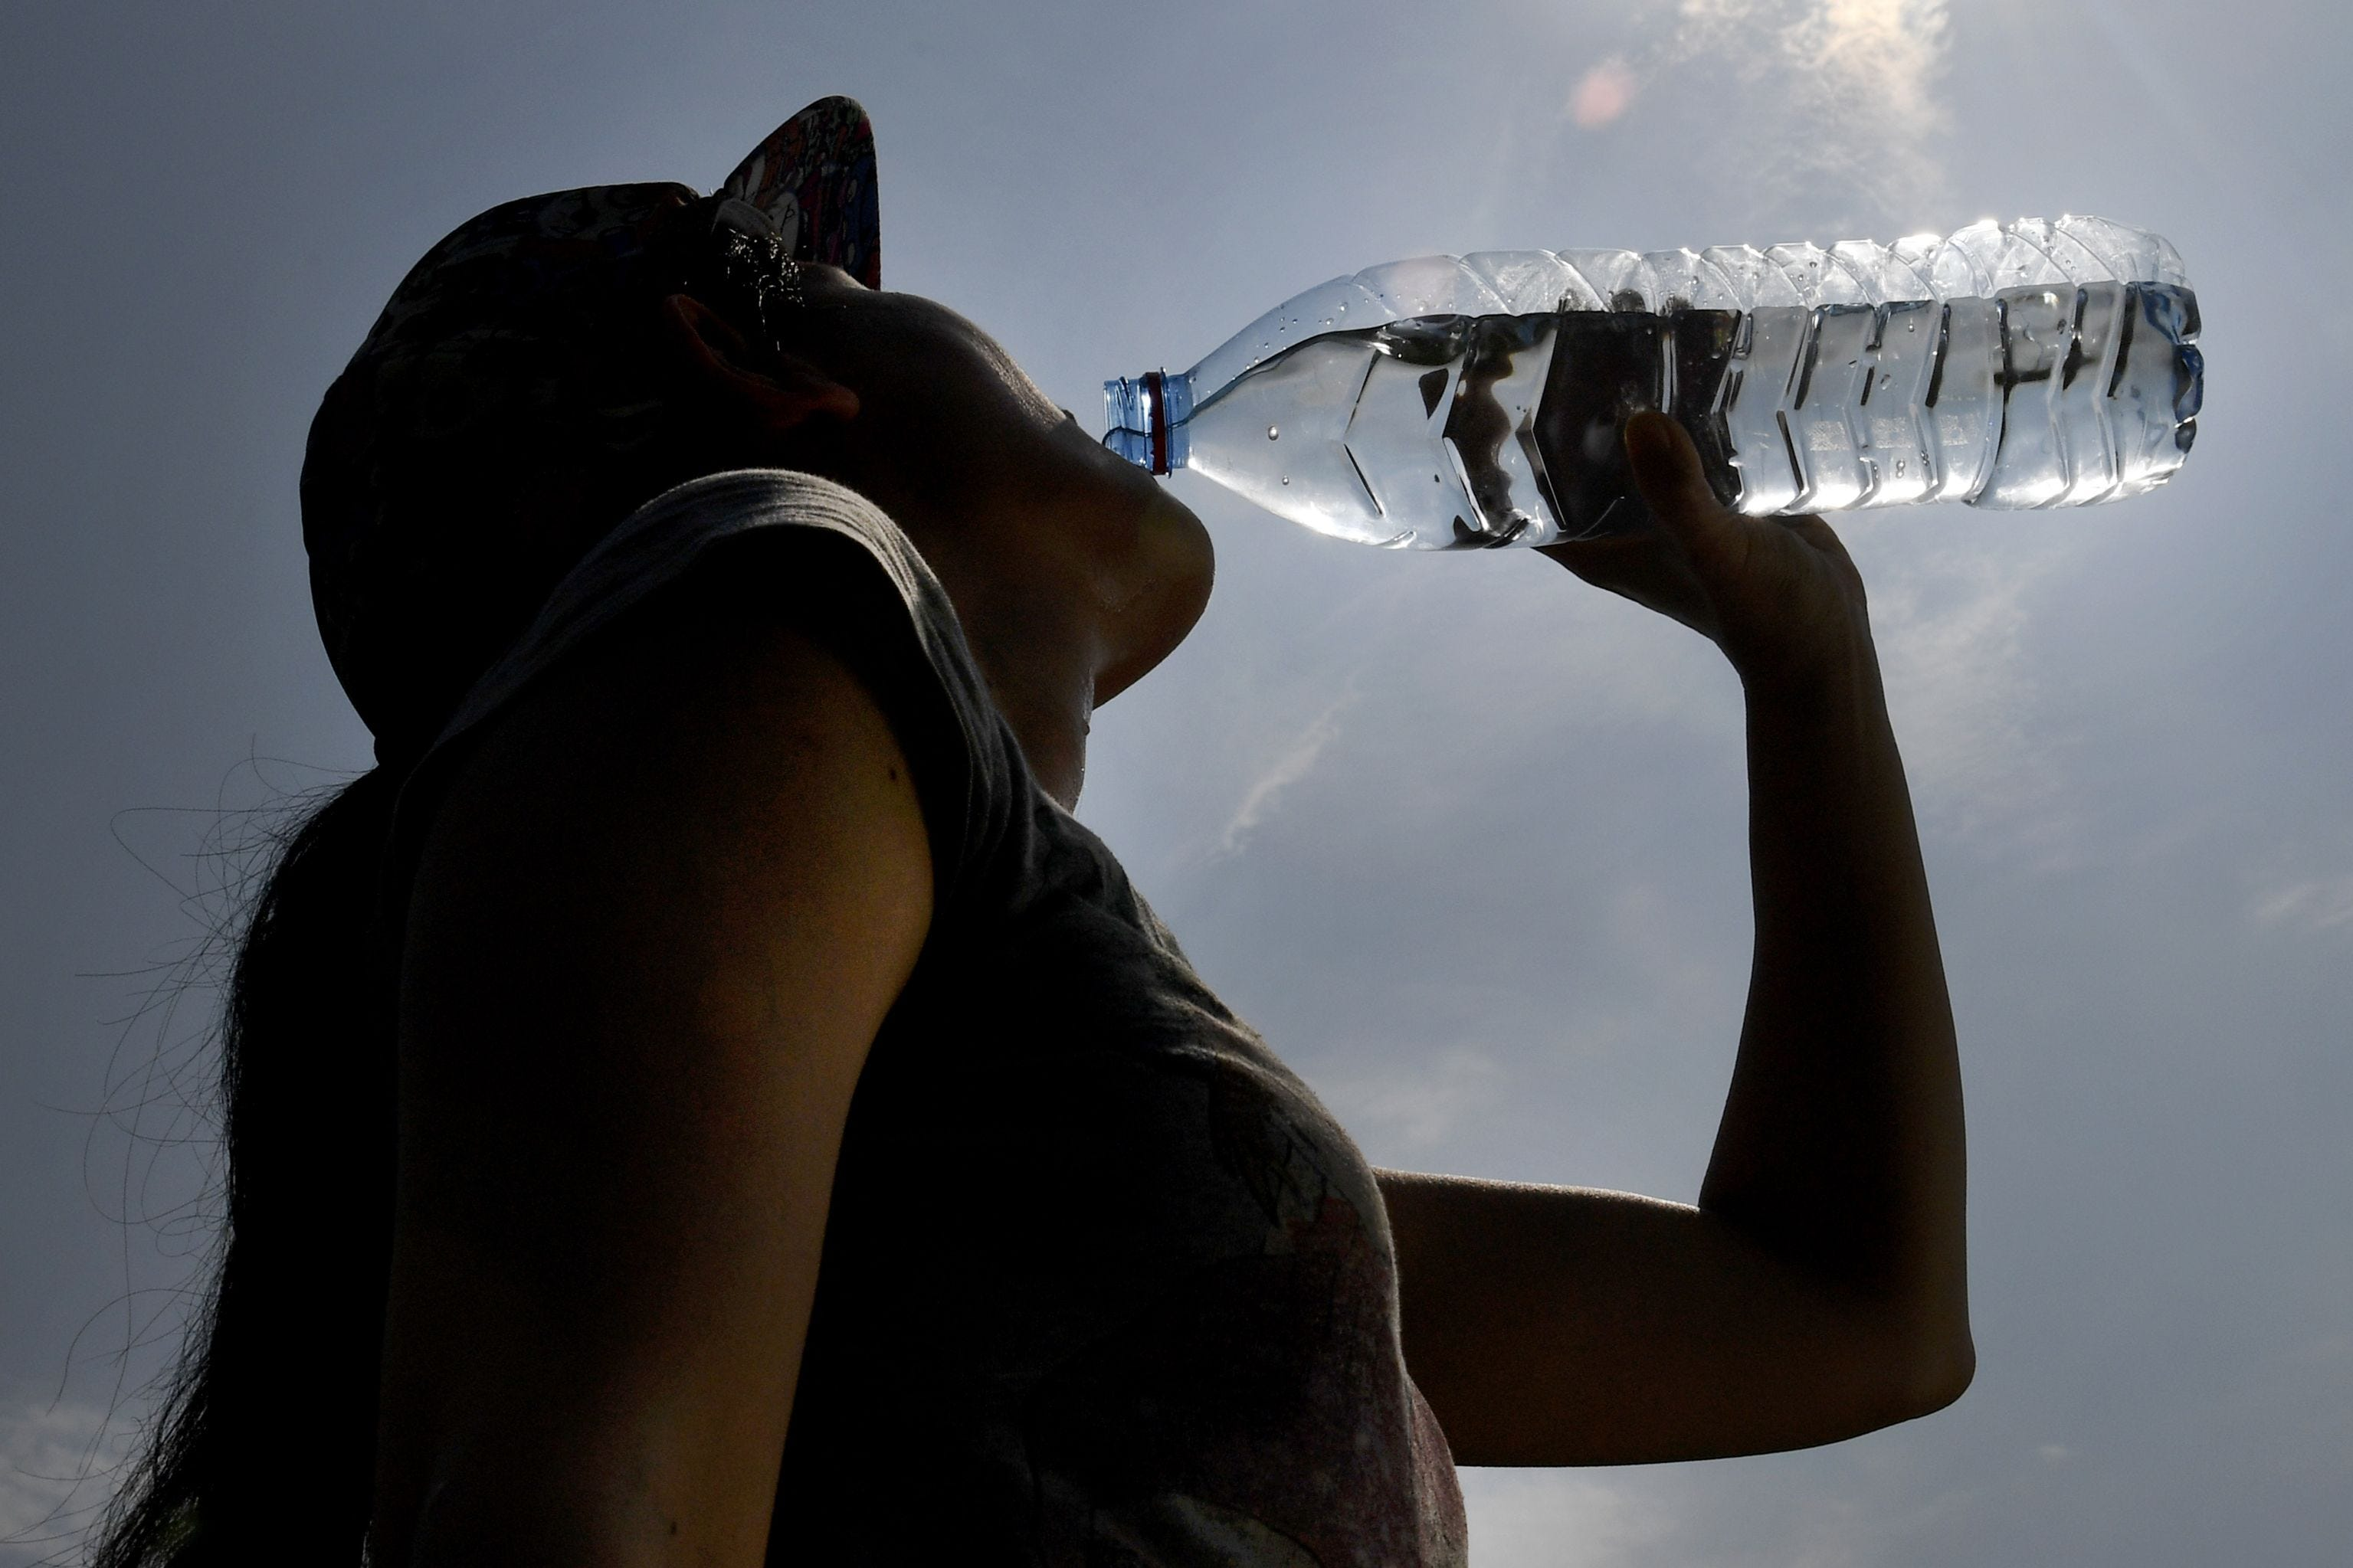 Penafiel, Starkey water sold at Target, Whole Foods has high arsenic